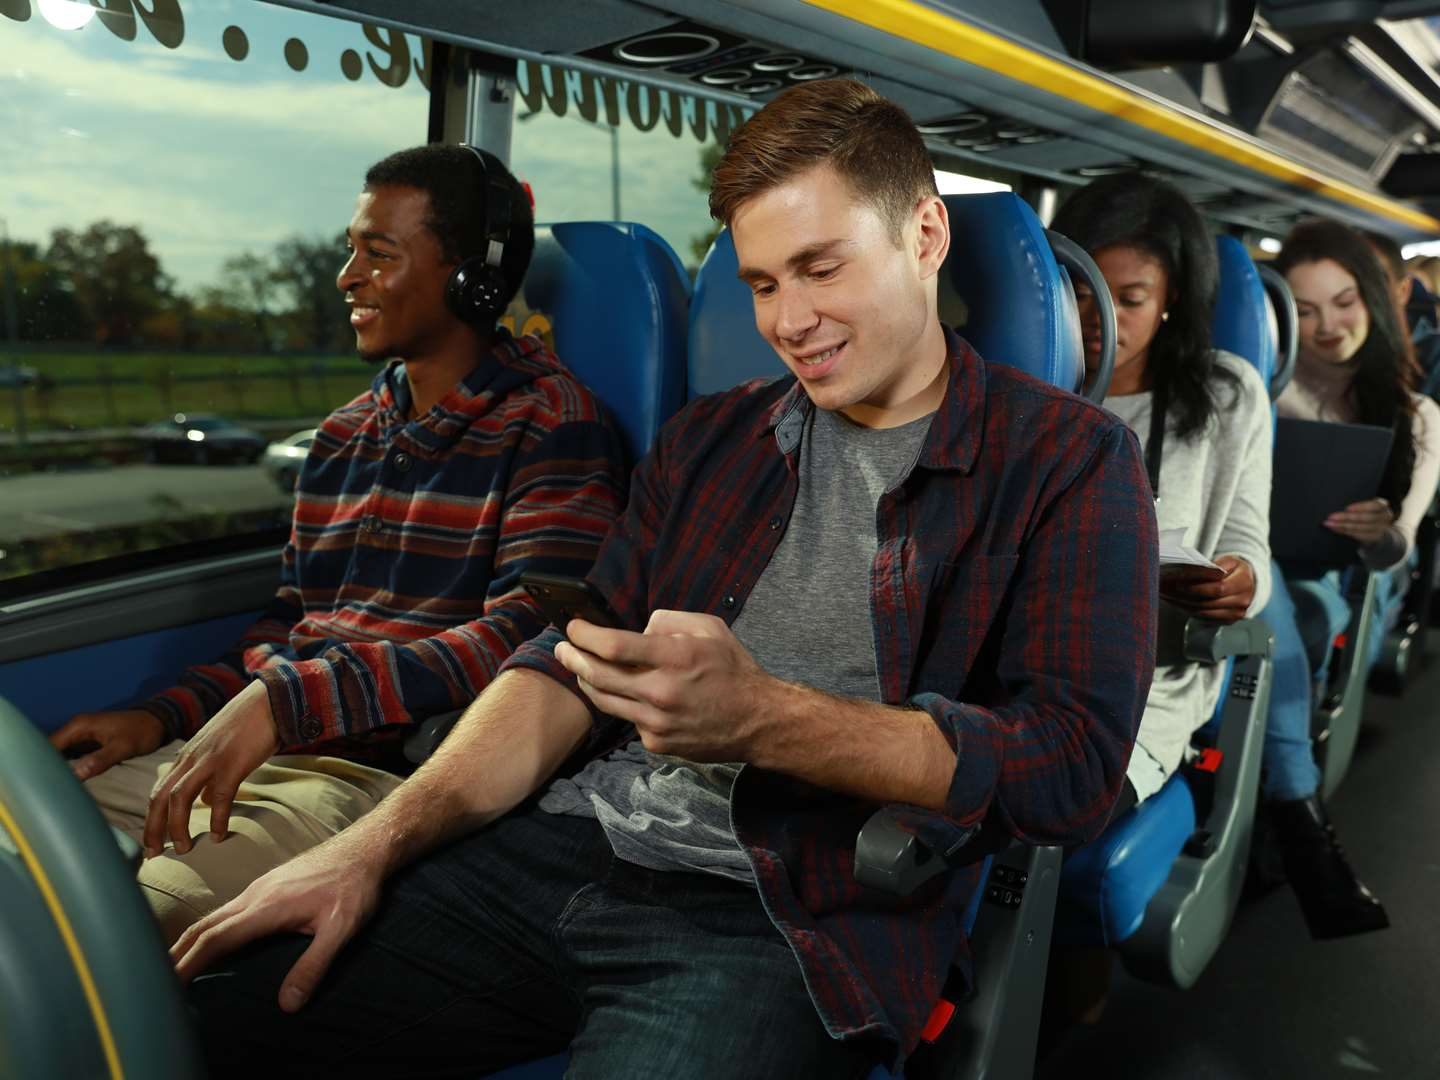 Customers in reserved seating on a megabus